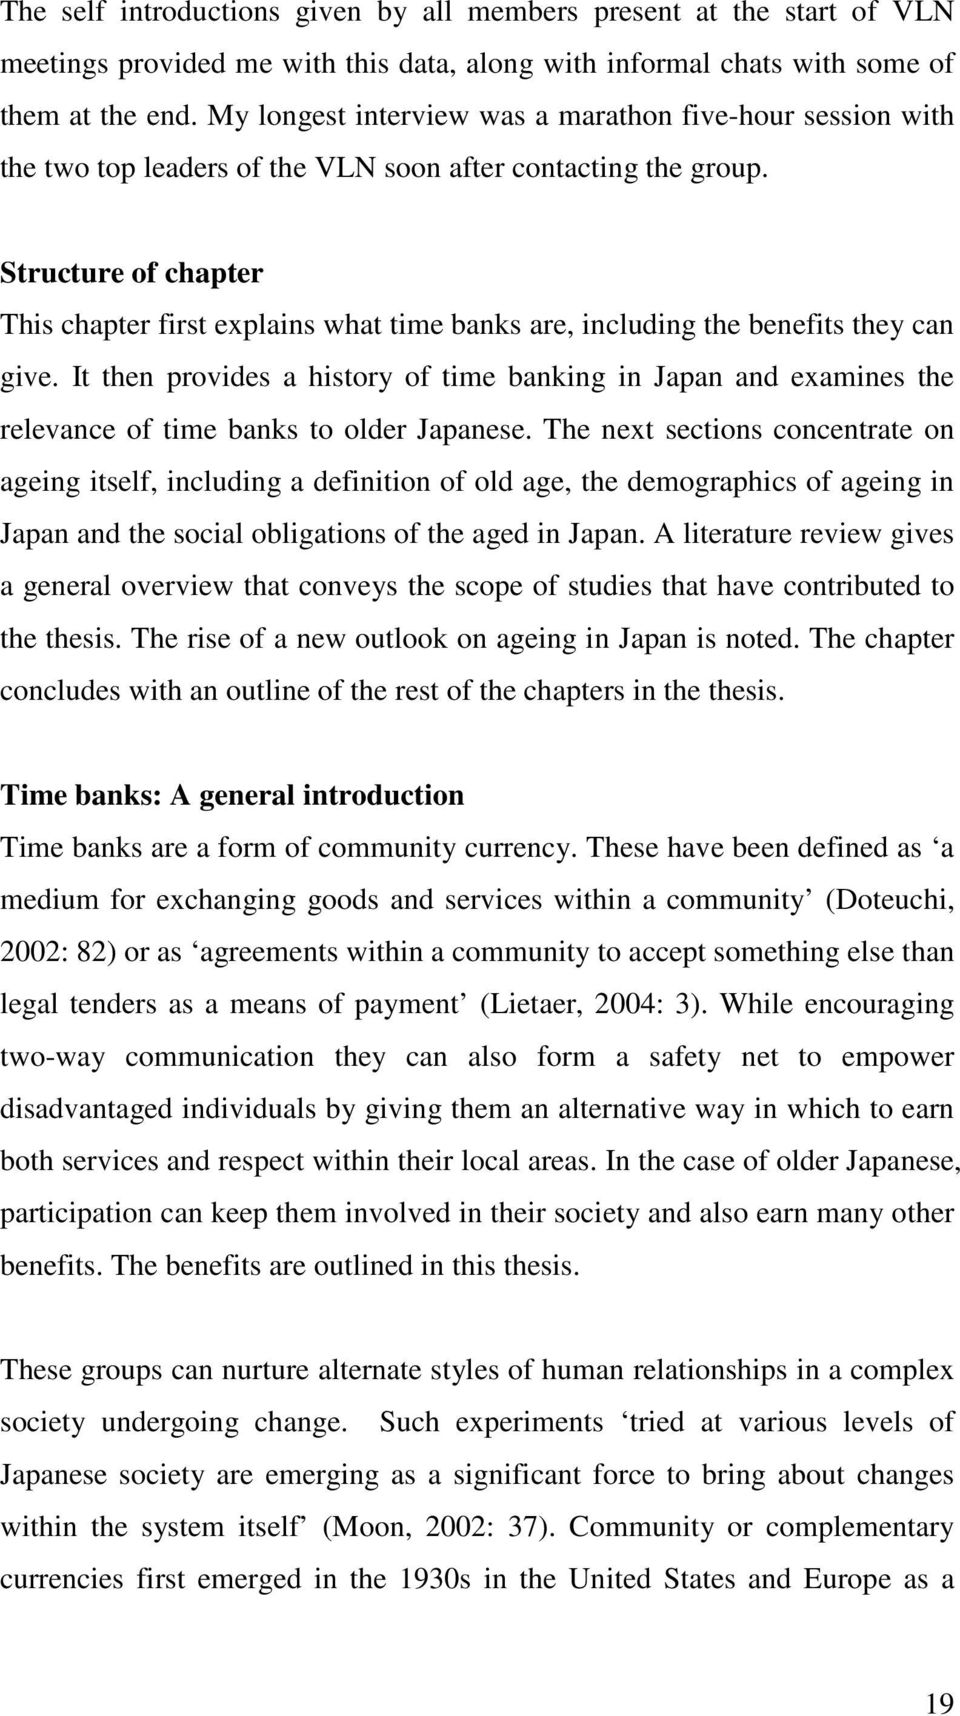 Structure of chapter This chapter first explains what time banks are, including the benefits they can give.